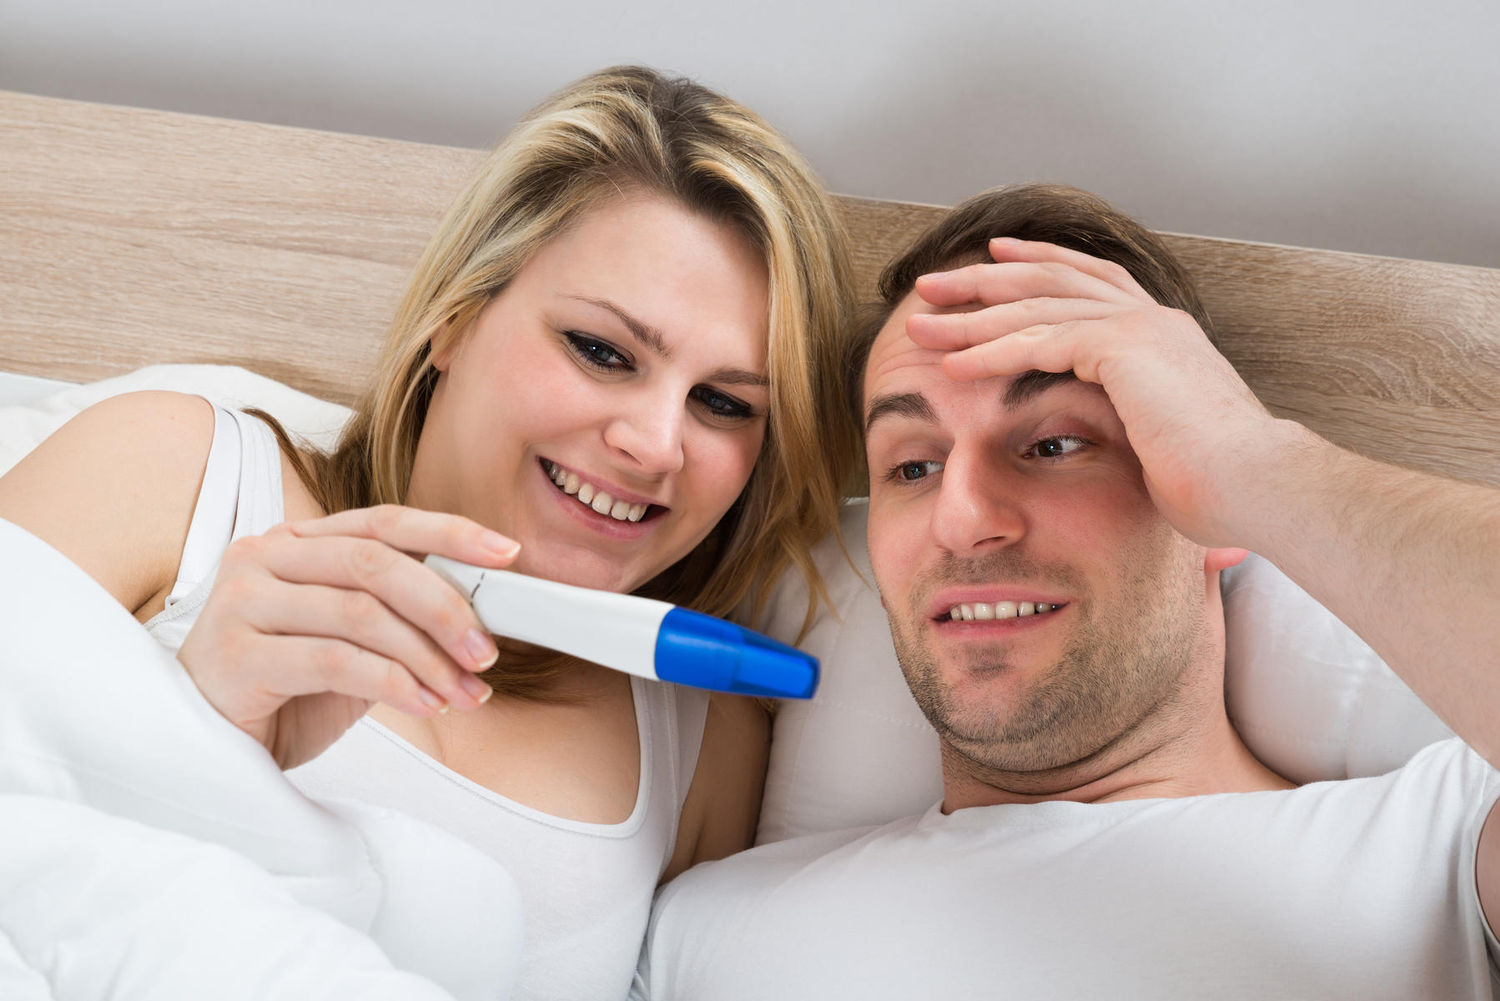 Shared Bedroom Ideas For Girls Fun Ways To Tell Your Husband You Are Pregnant